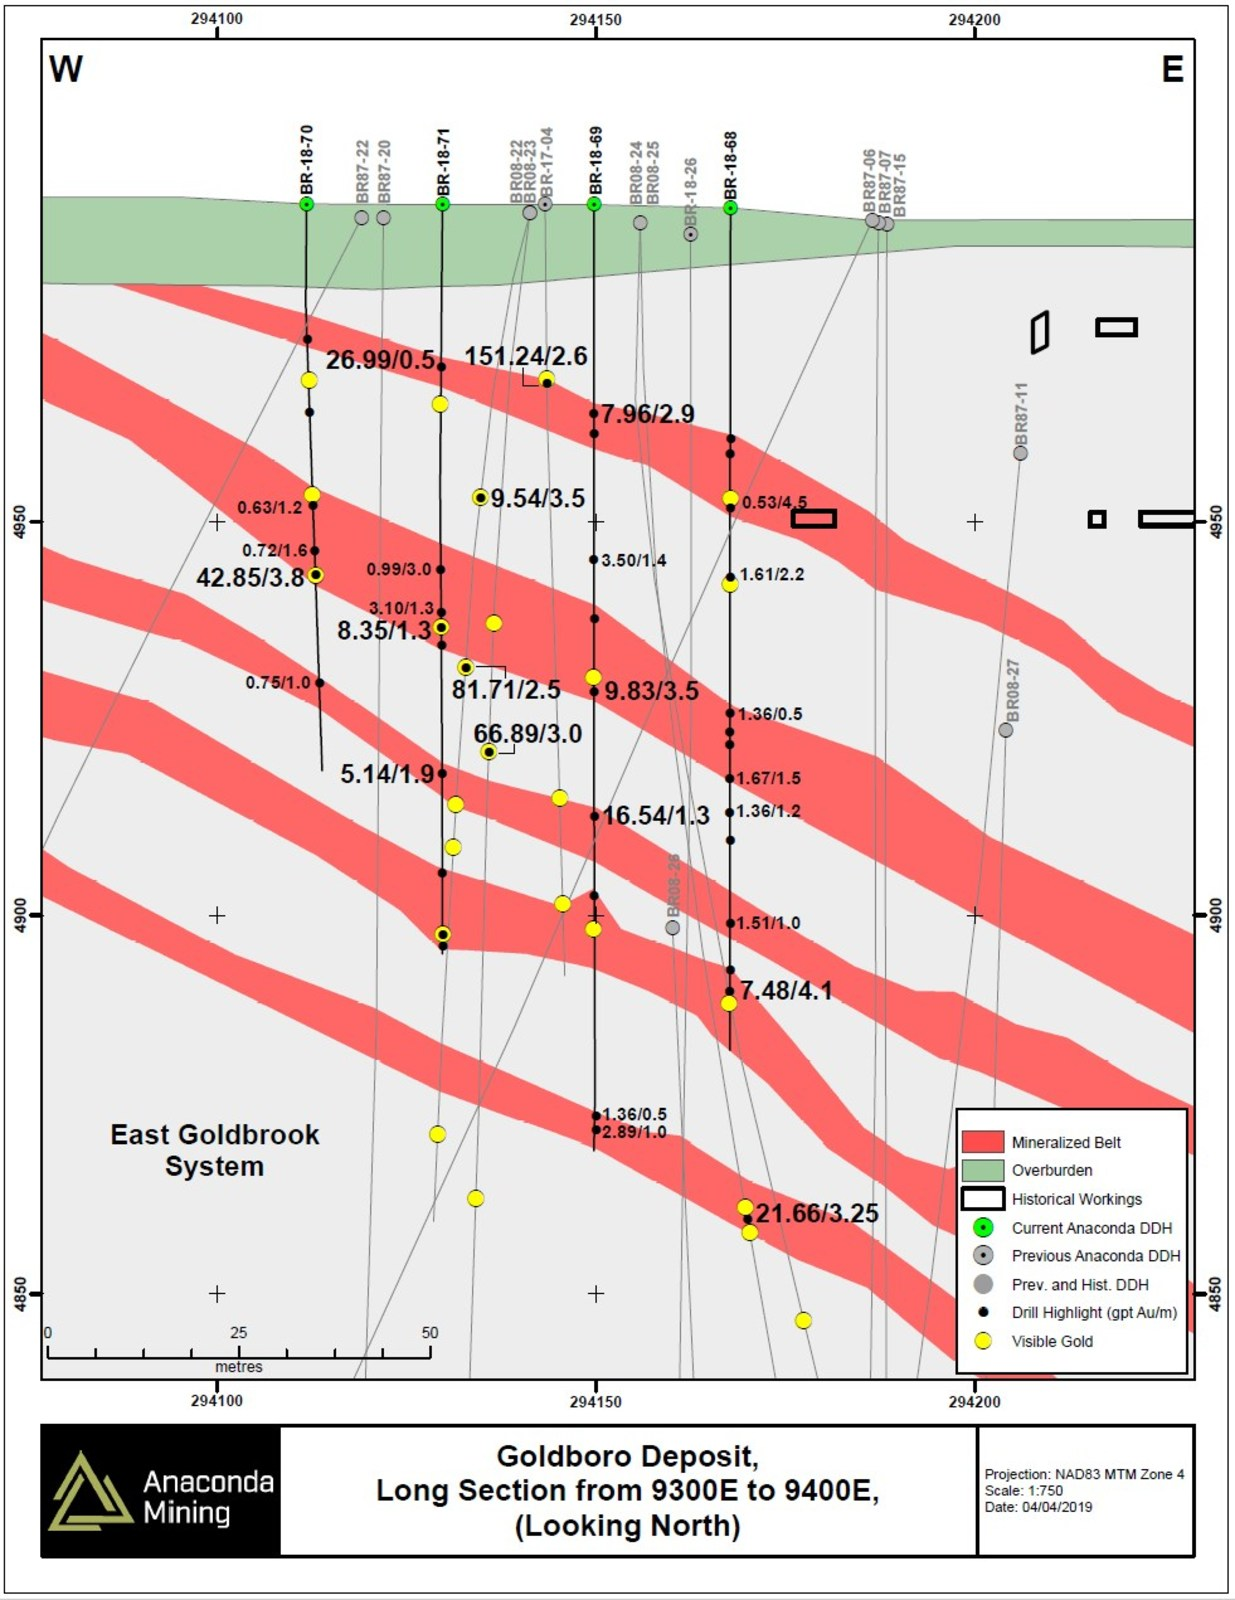 Exhibit B. A vertical long section through the area of the EG Gold System drilled as part of the Metallurgical Drill Program between cross sections 9300E and 9400E, showing selected highlights of recent and previous drilling.